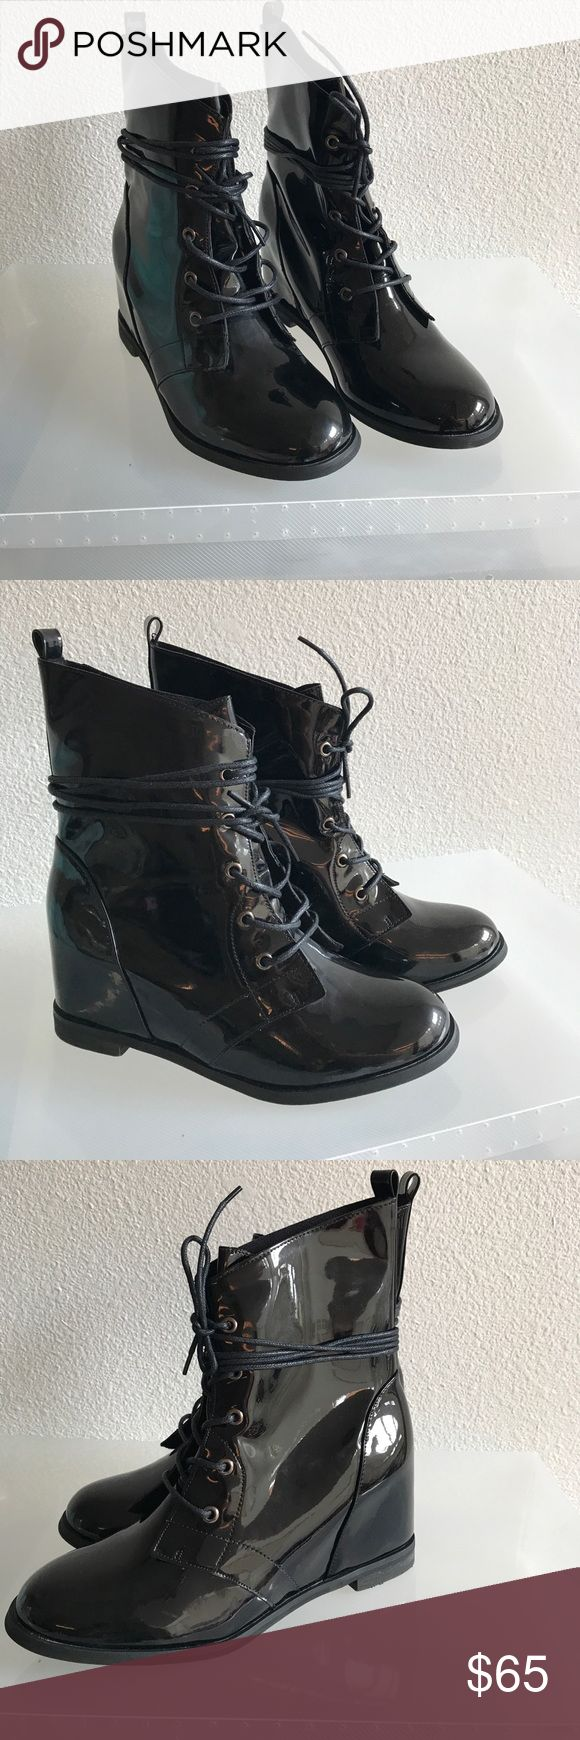 LADIES WEDGE BOOTIES (SHINY PATENT UPPER MATERIAL) NEW IN THE BOX NEVER WORN (THEY ARE VERY COMFORTABLE WEDGE Shoes Lace Up Boots